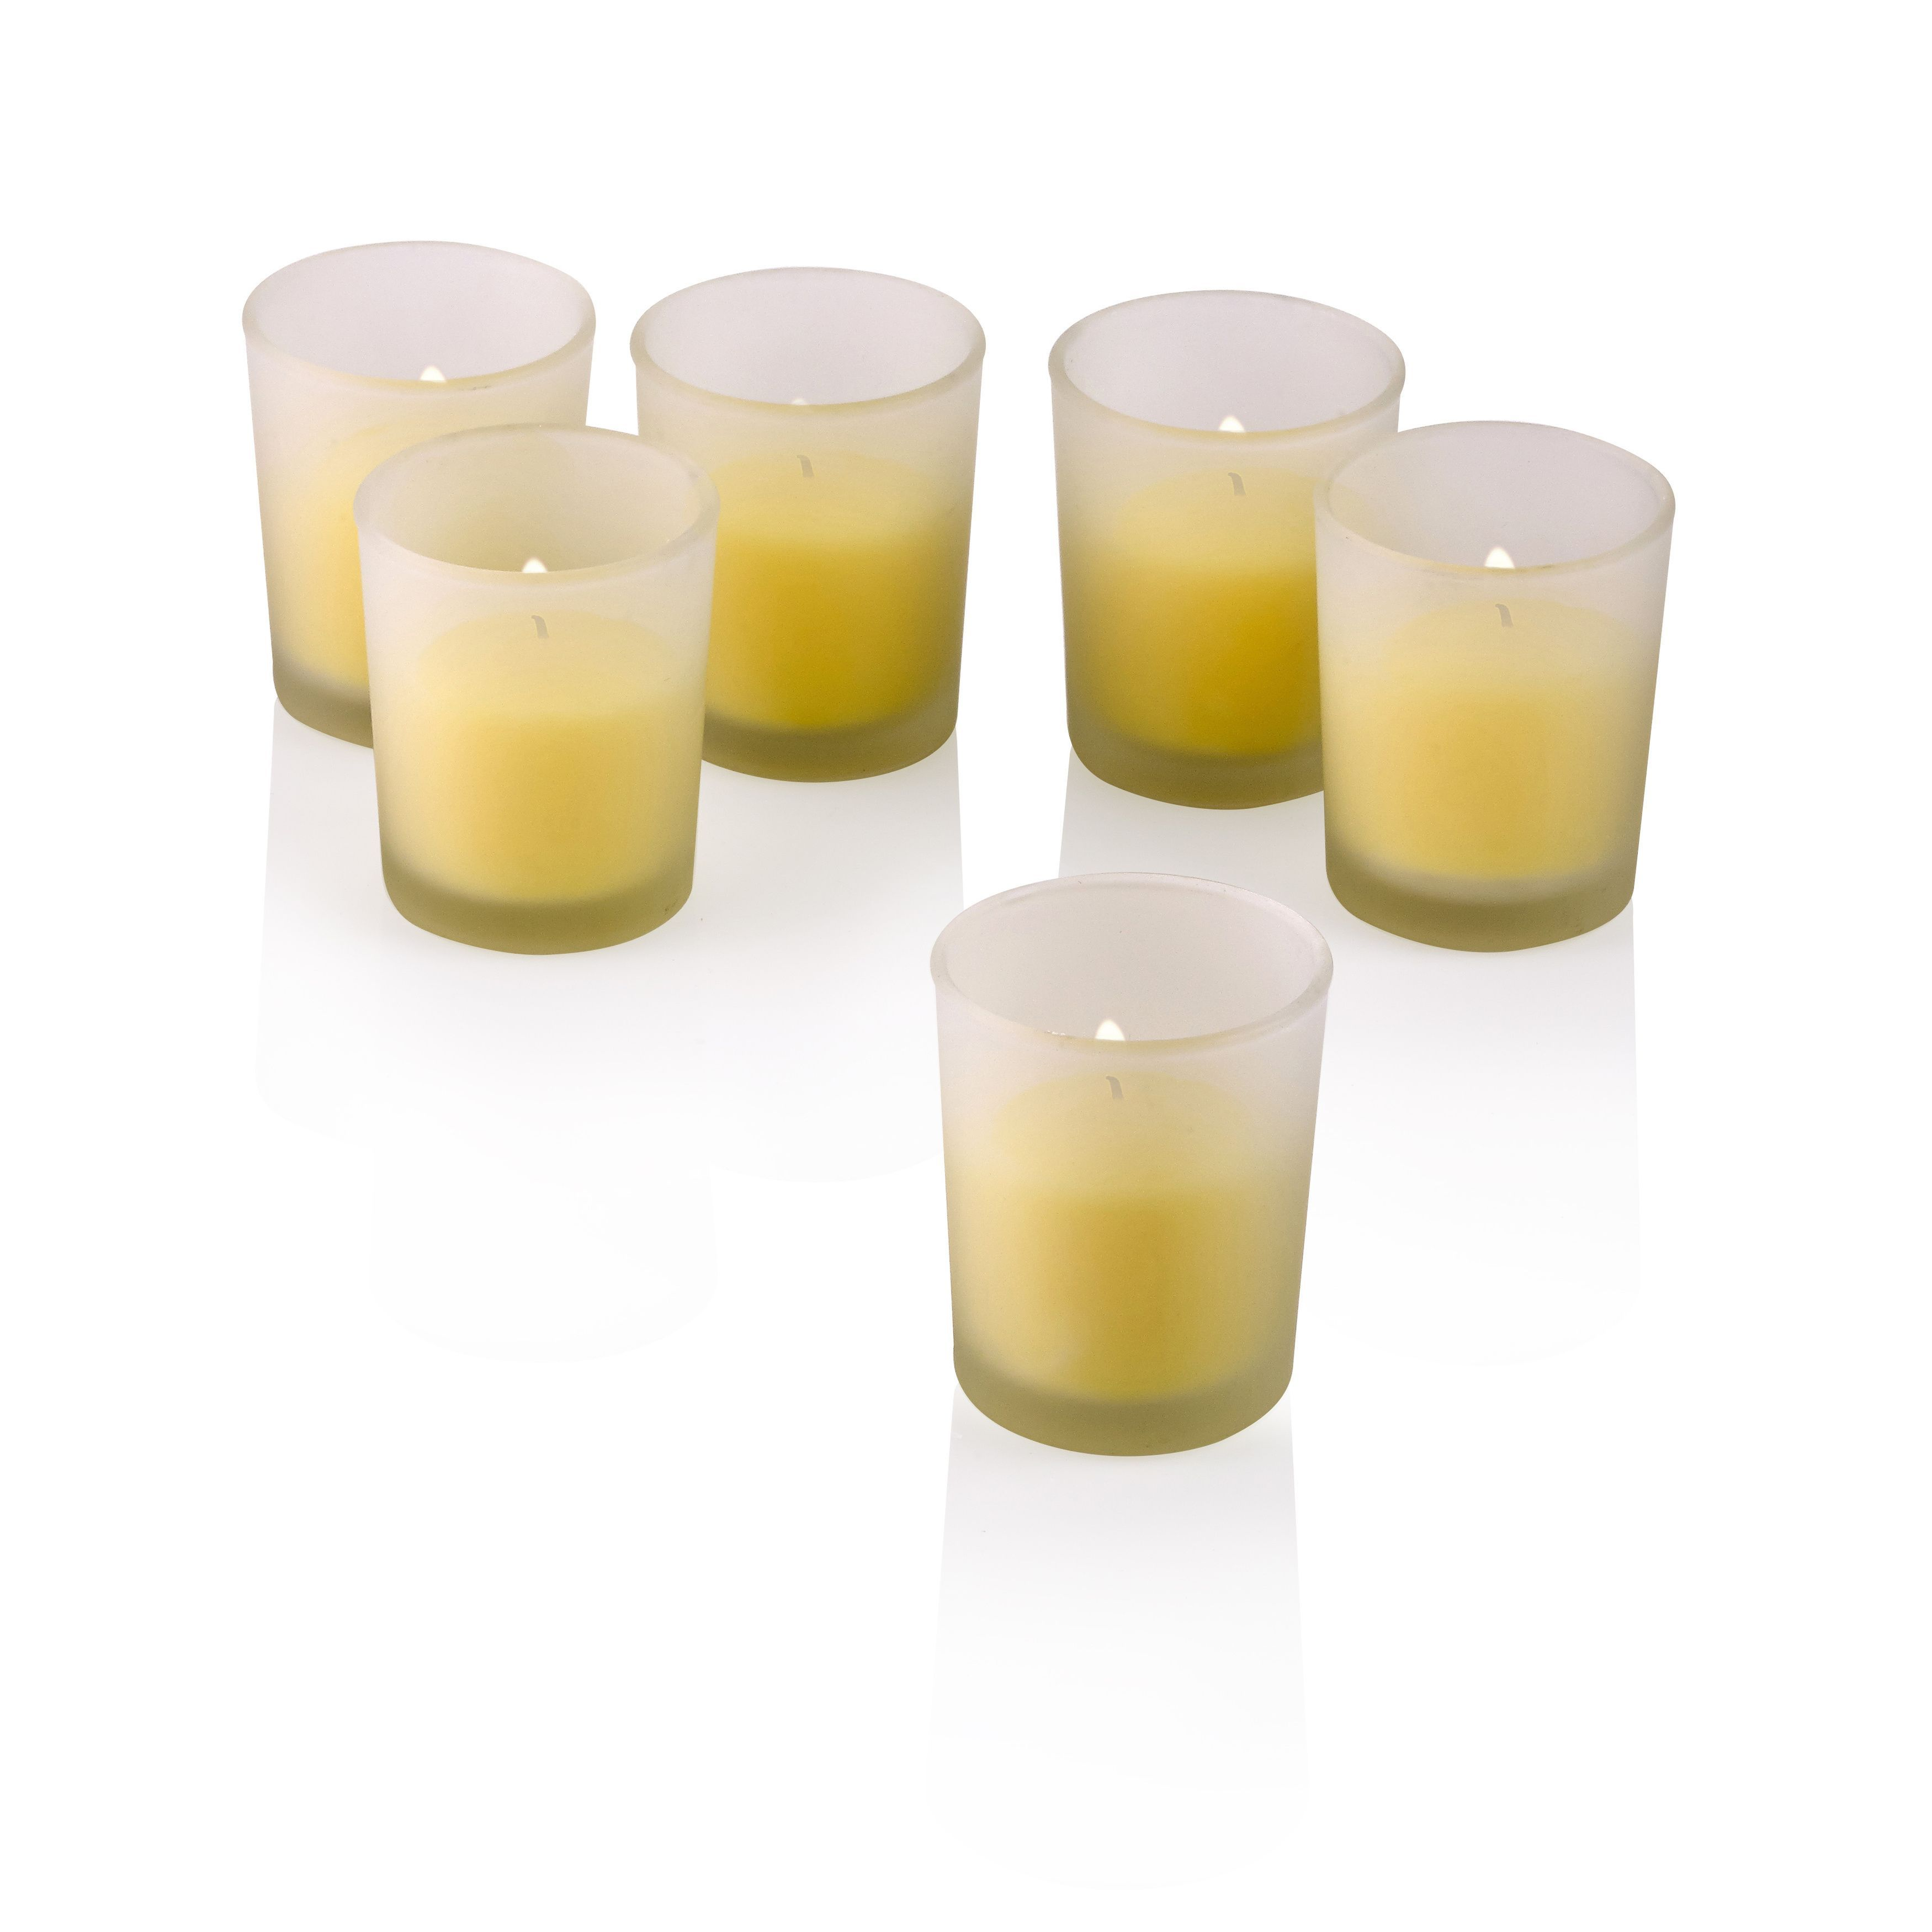 Light white frosted glass round votive candle holders with